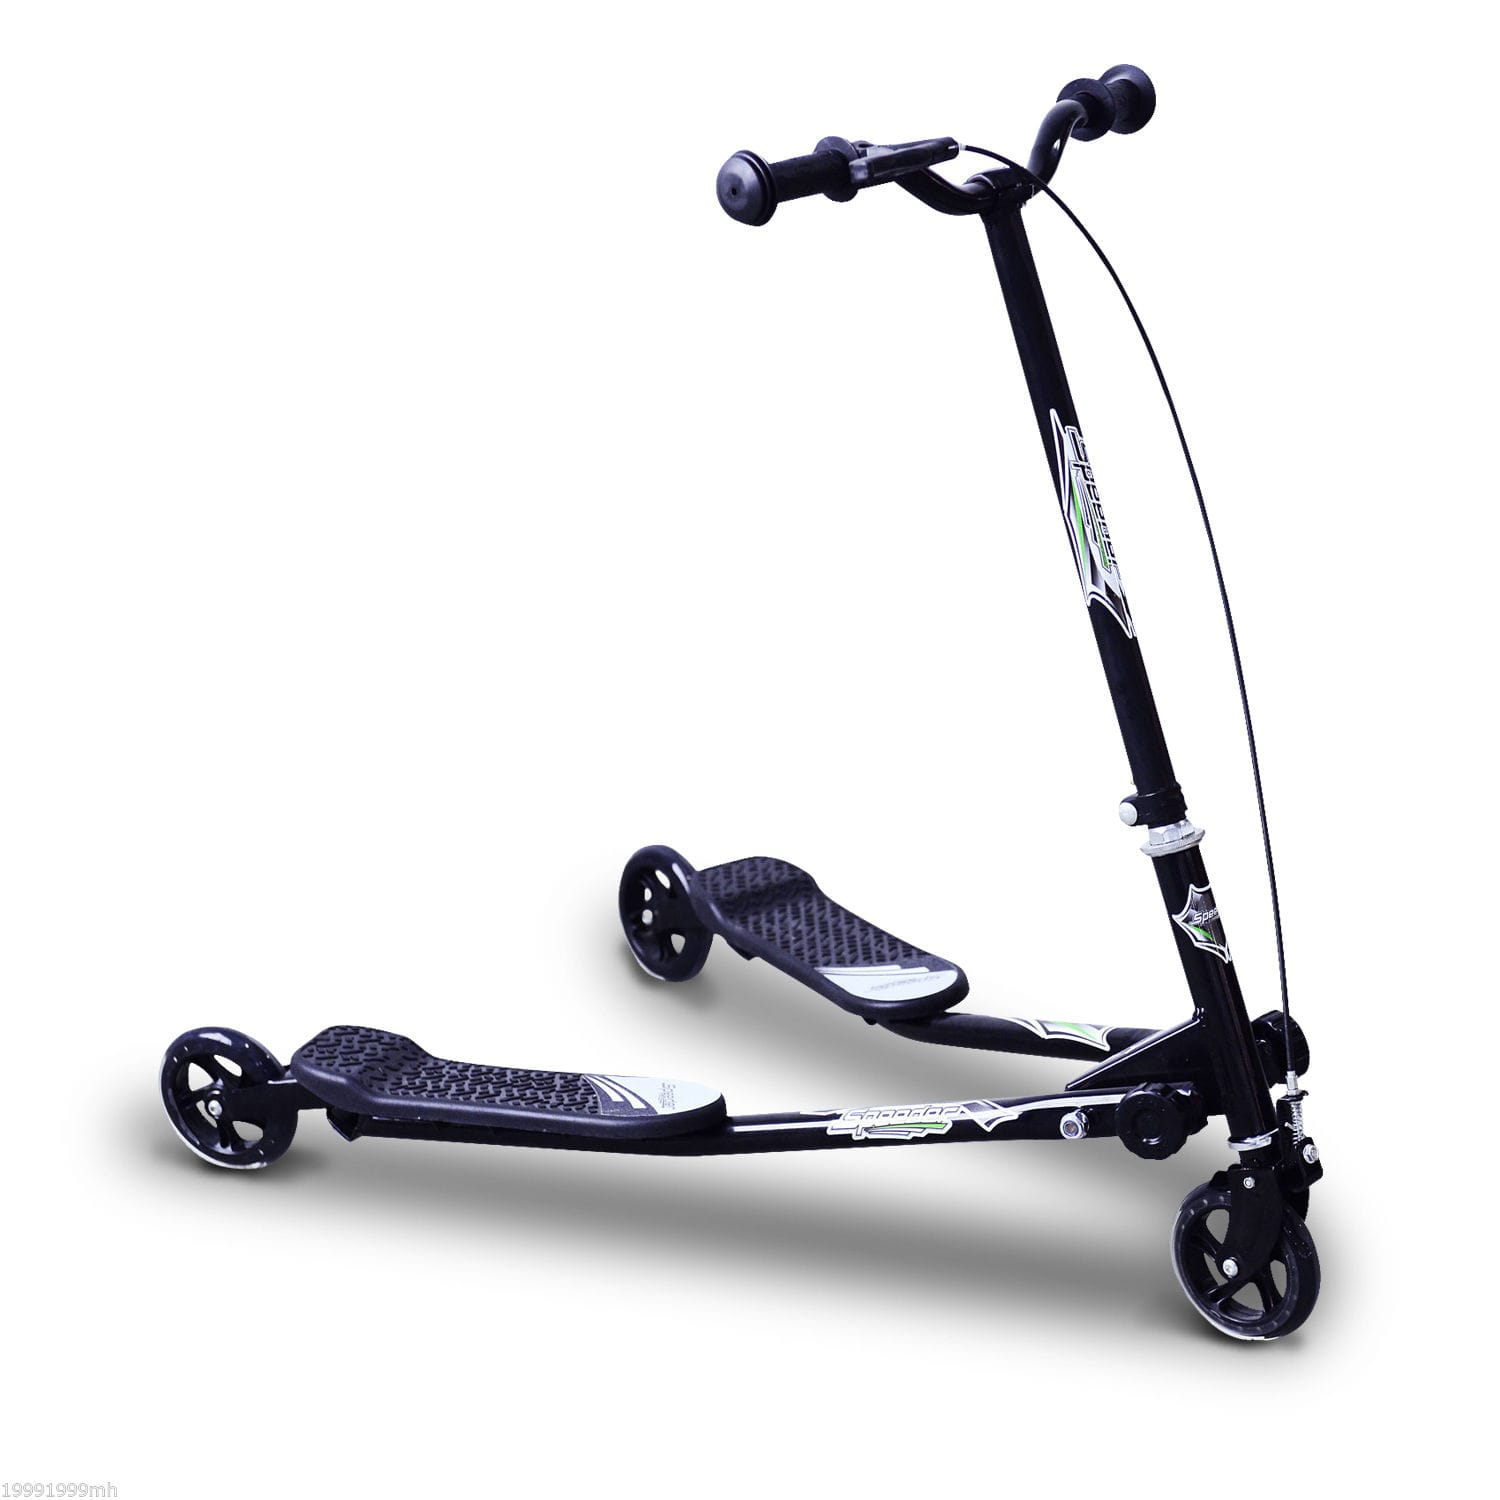 Win a Homcom 3 wheel Foldable Children Scooter! 08/10/2020) Giveaway Image